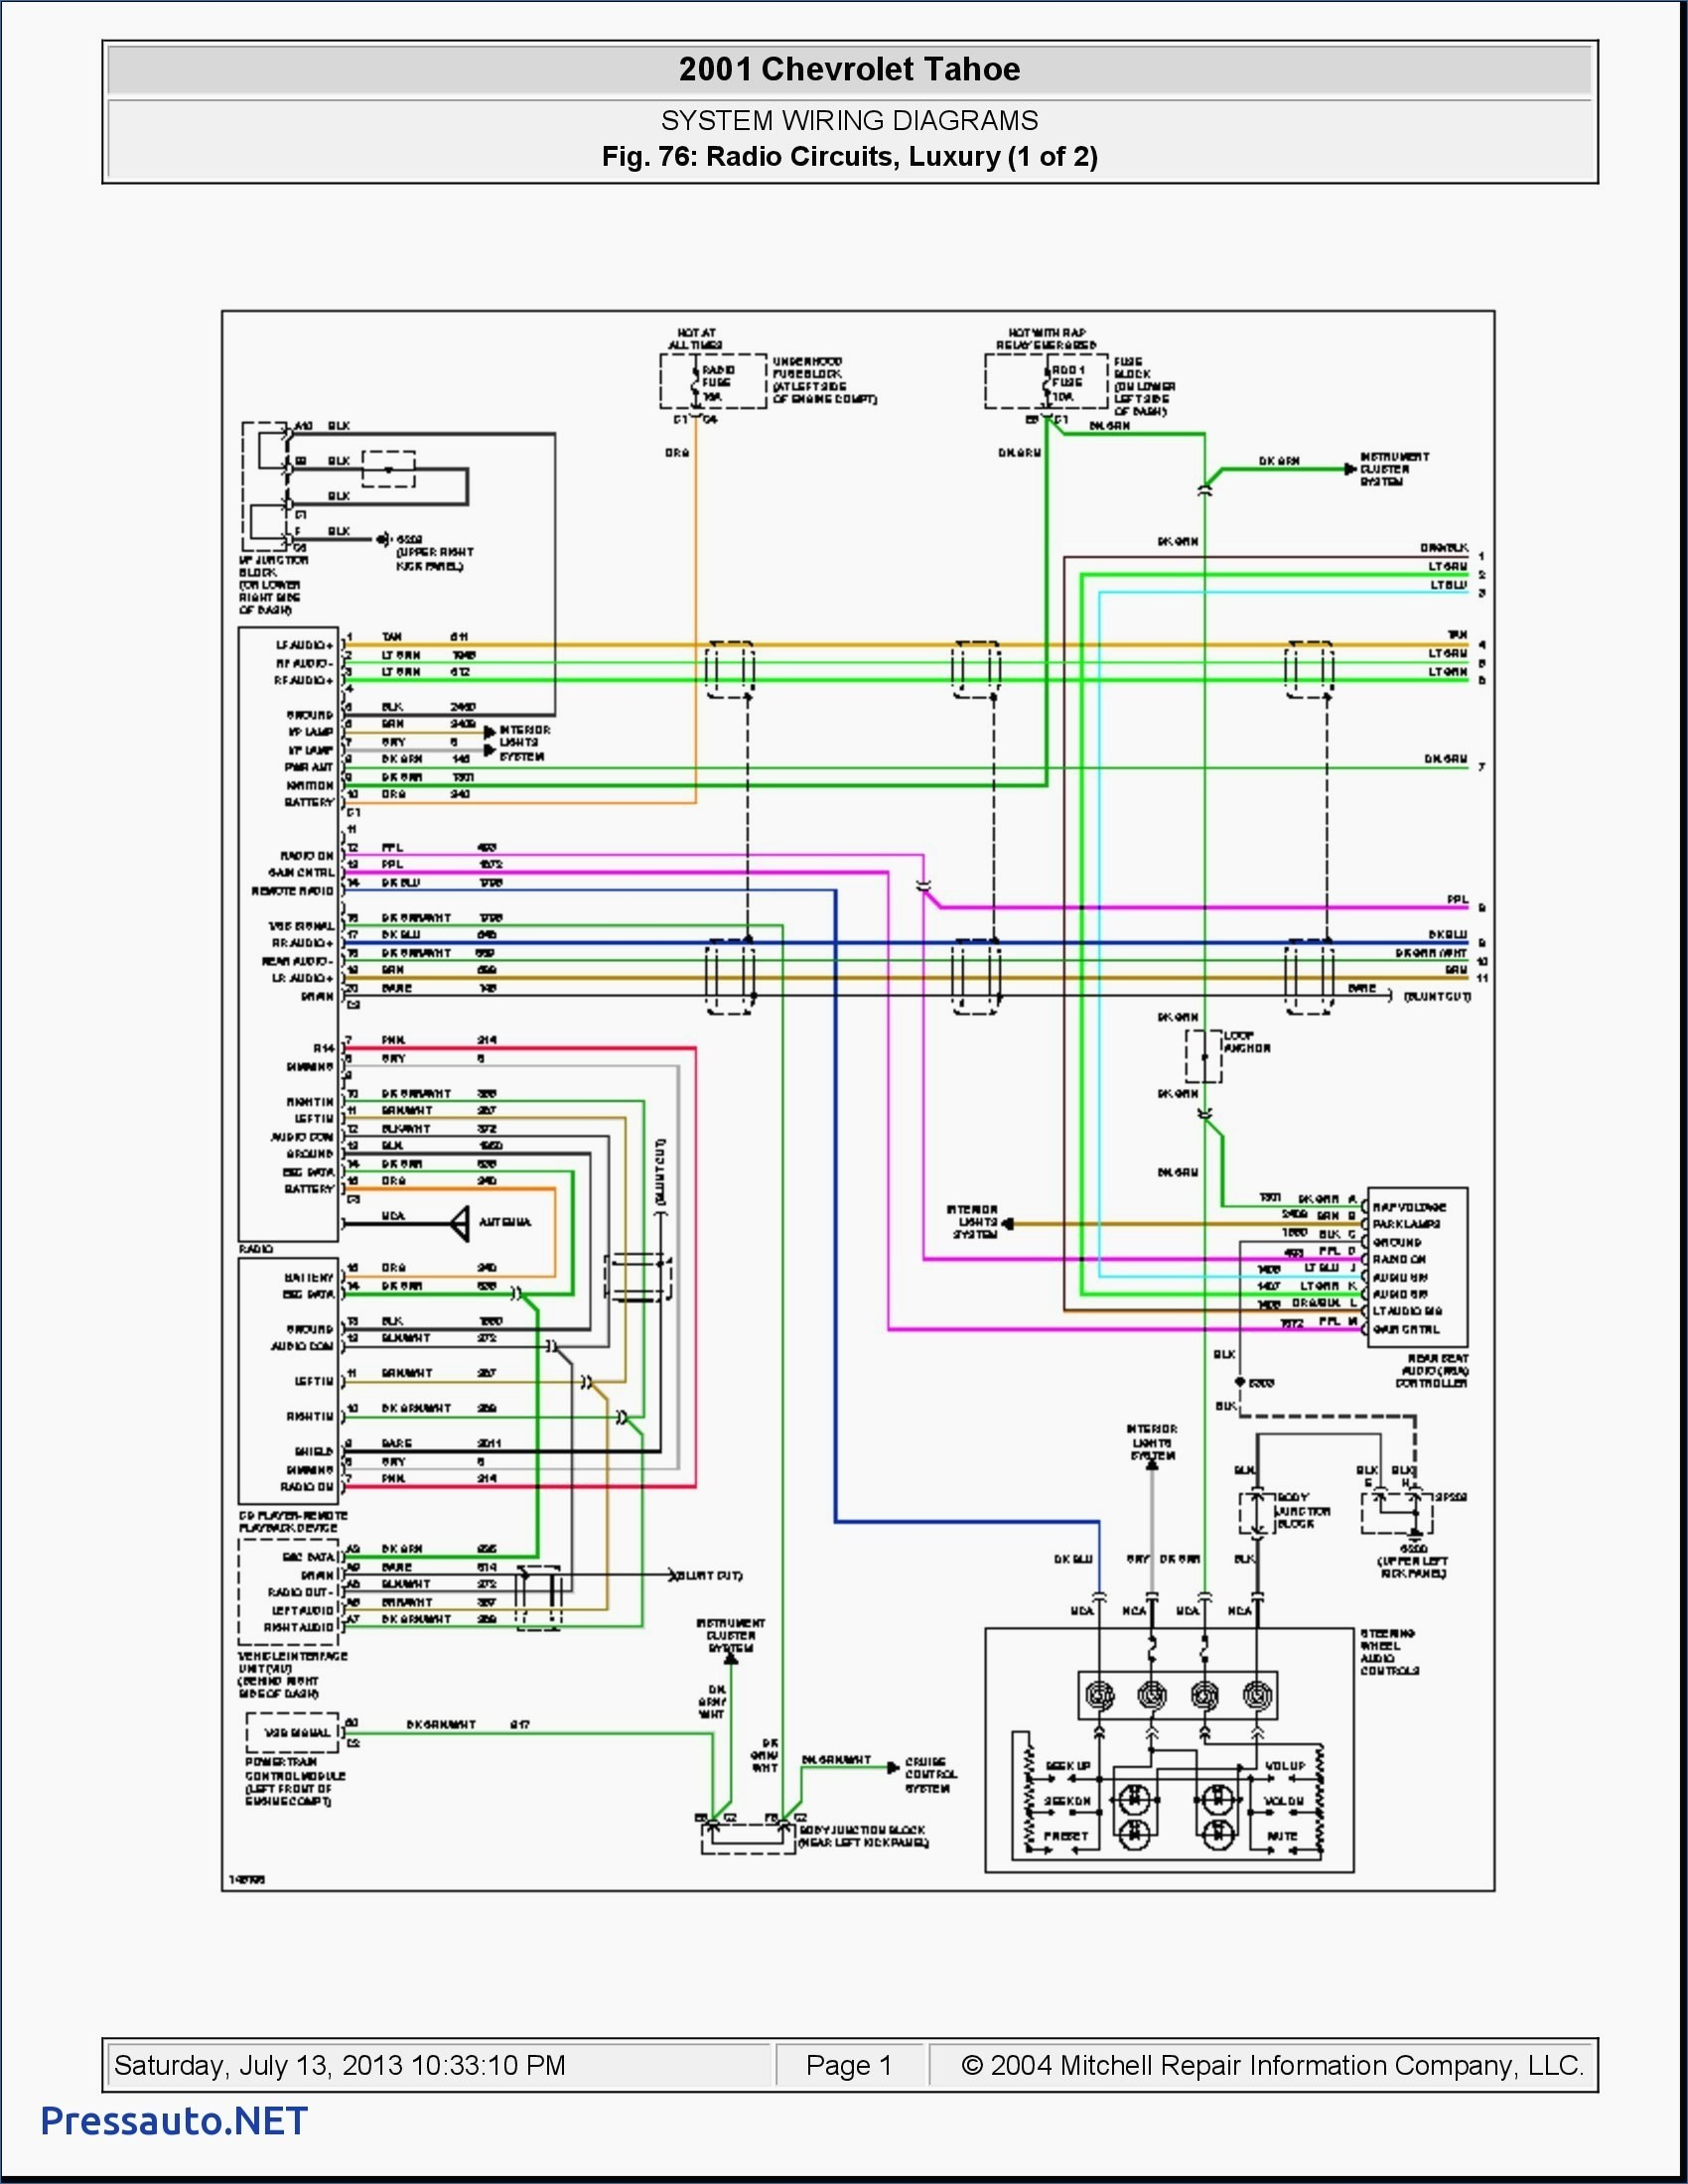 2015 Chevy Traverse Wiring Diagram - Wiring Diagram Models add-endure -  add-endure.zeevaproduction.it | 2015 Chevy Traverse Wiring Diagram |  | add-endure.zeevaproduction.it